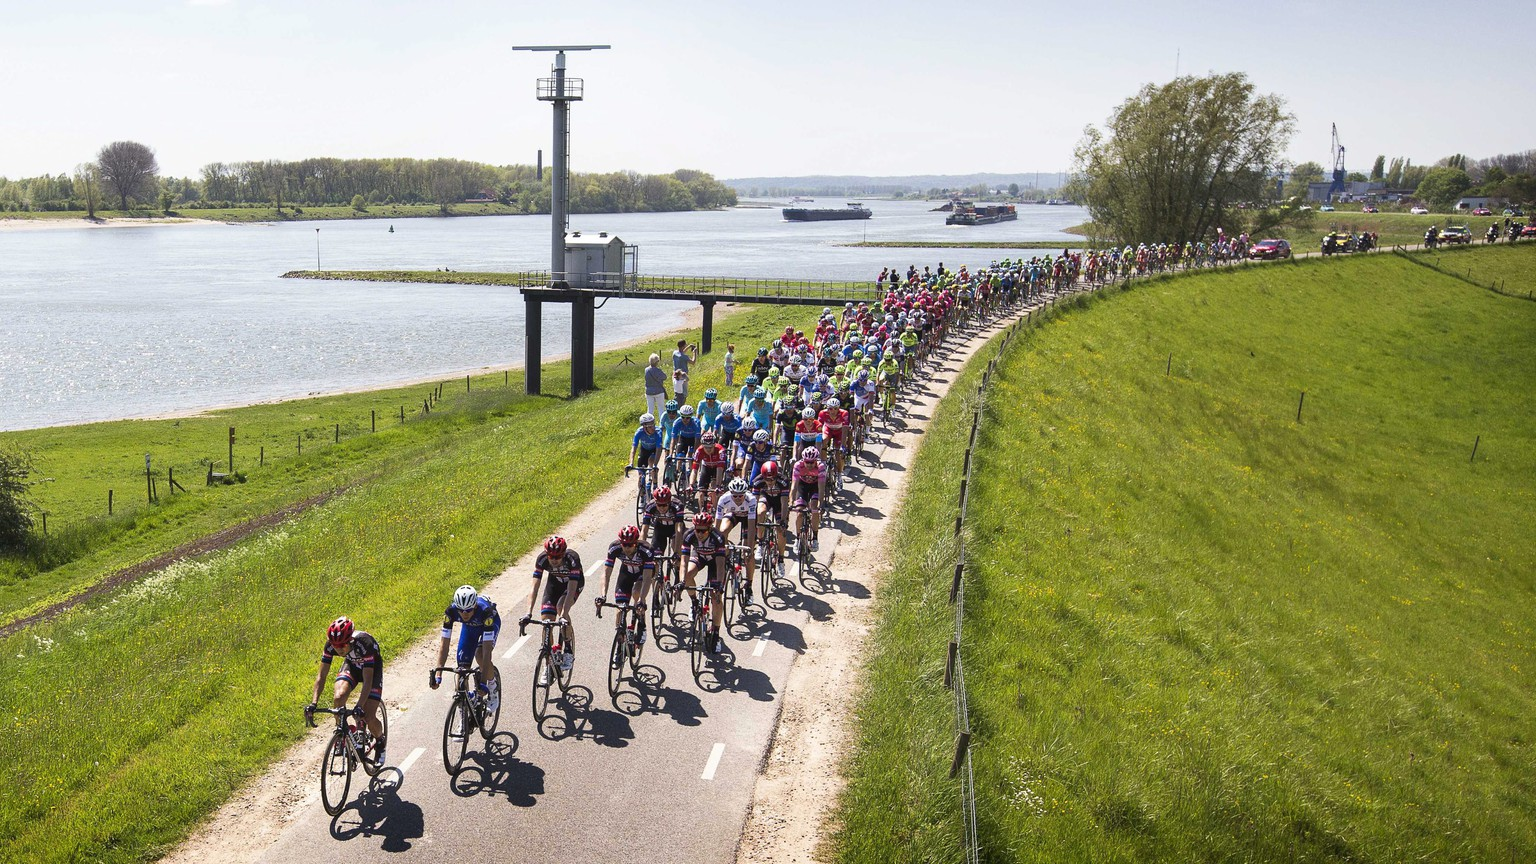 epa05294650 The peloton crosses the Waaldijk on the Waal river during the third stage of the Giro d'Italia cycling race over 190km between Nijmegen and Arnhem, near Doornenburg, Netherlands, 08 May 2016.  EPA/VINCENT JANNINK